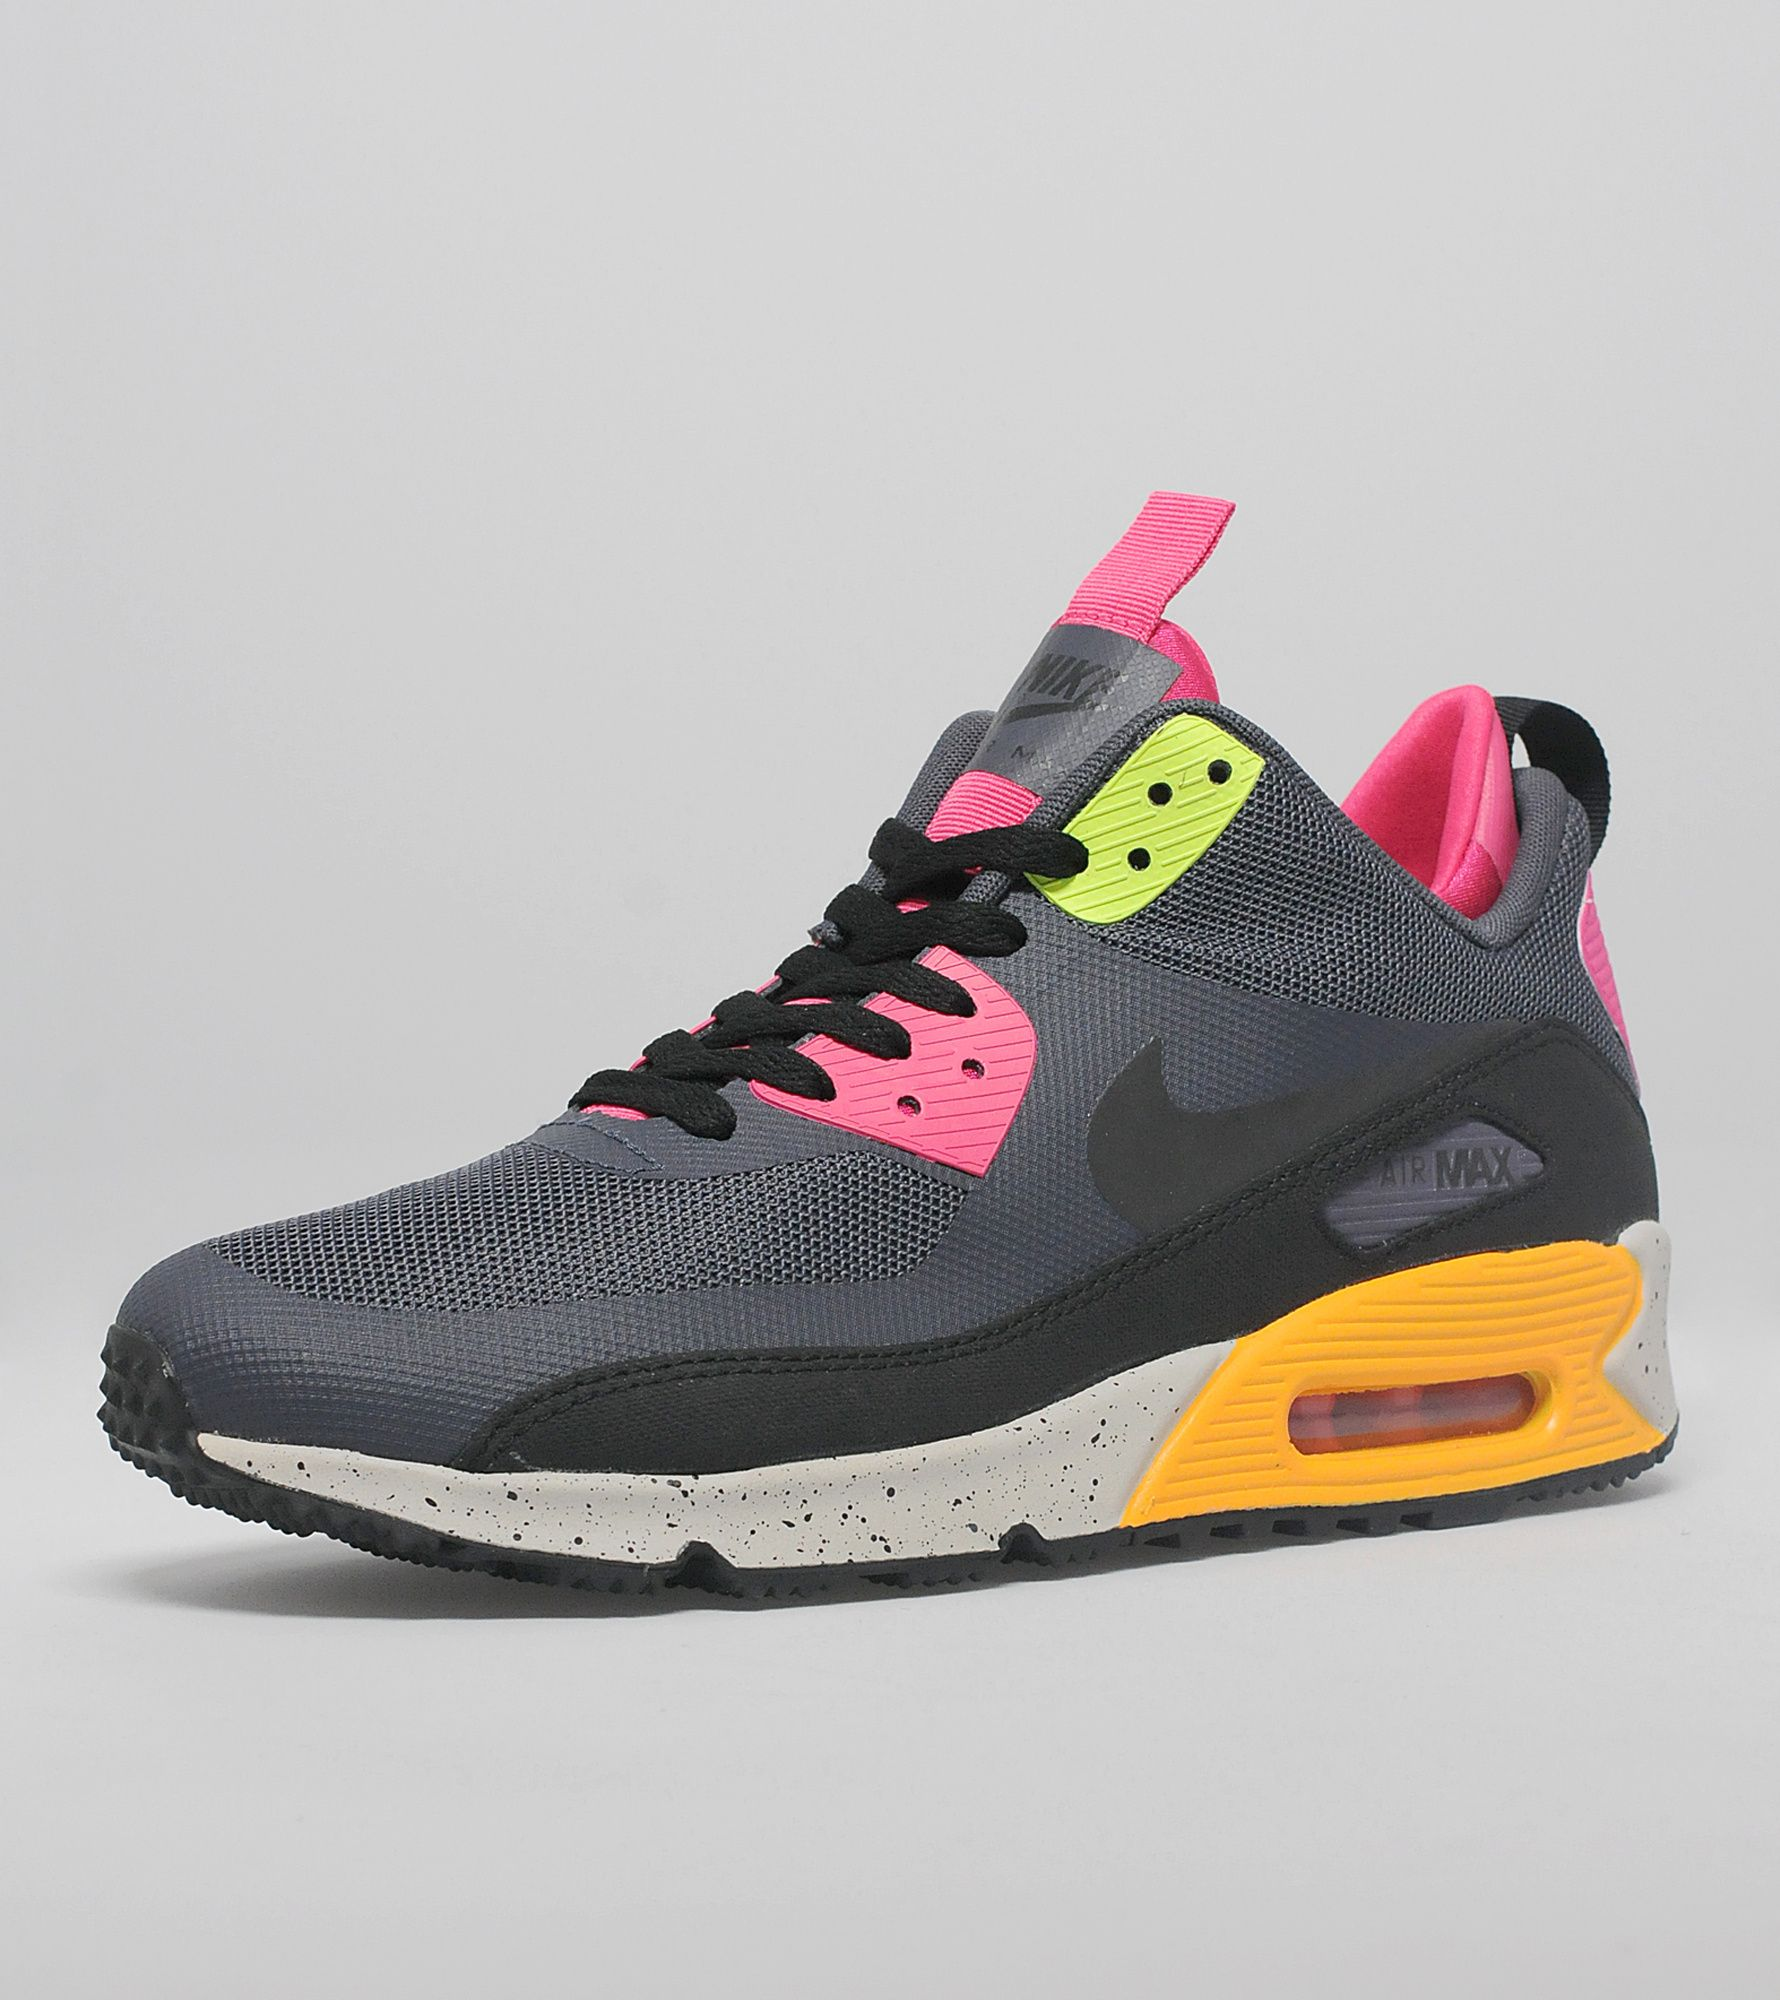 sports shoes 44f2c 6503c ... spain order nike air max 90 mid sneakerboot 4fcc1 b4df4 015c8 f8553